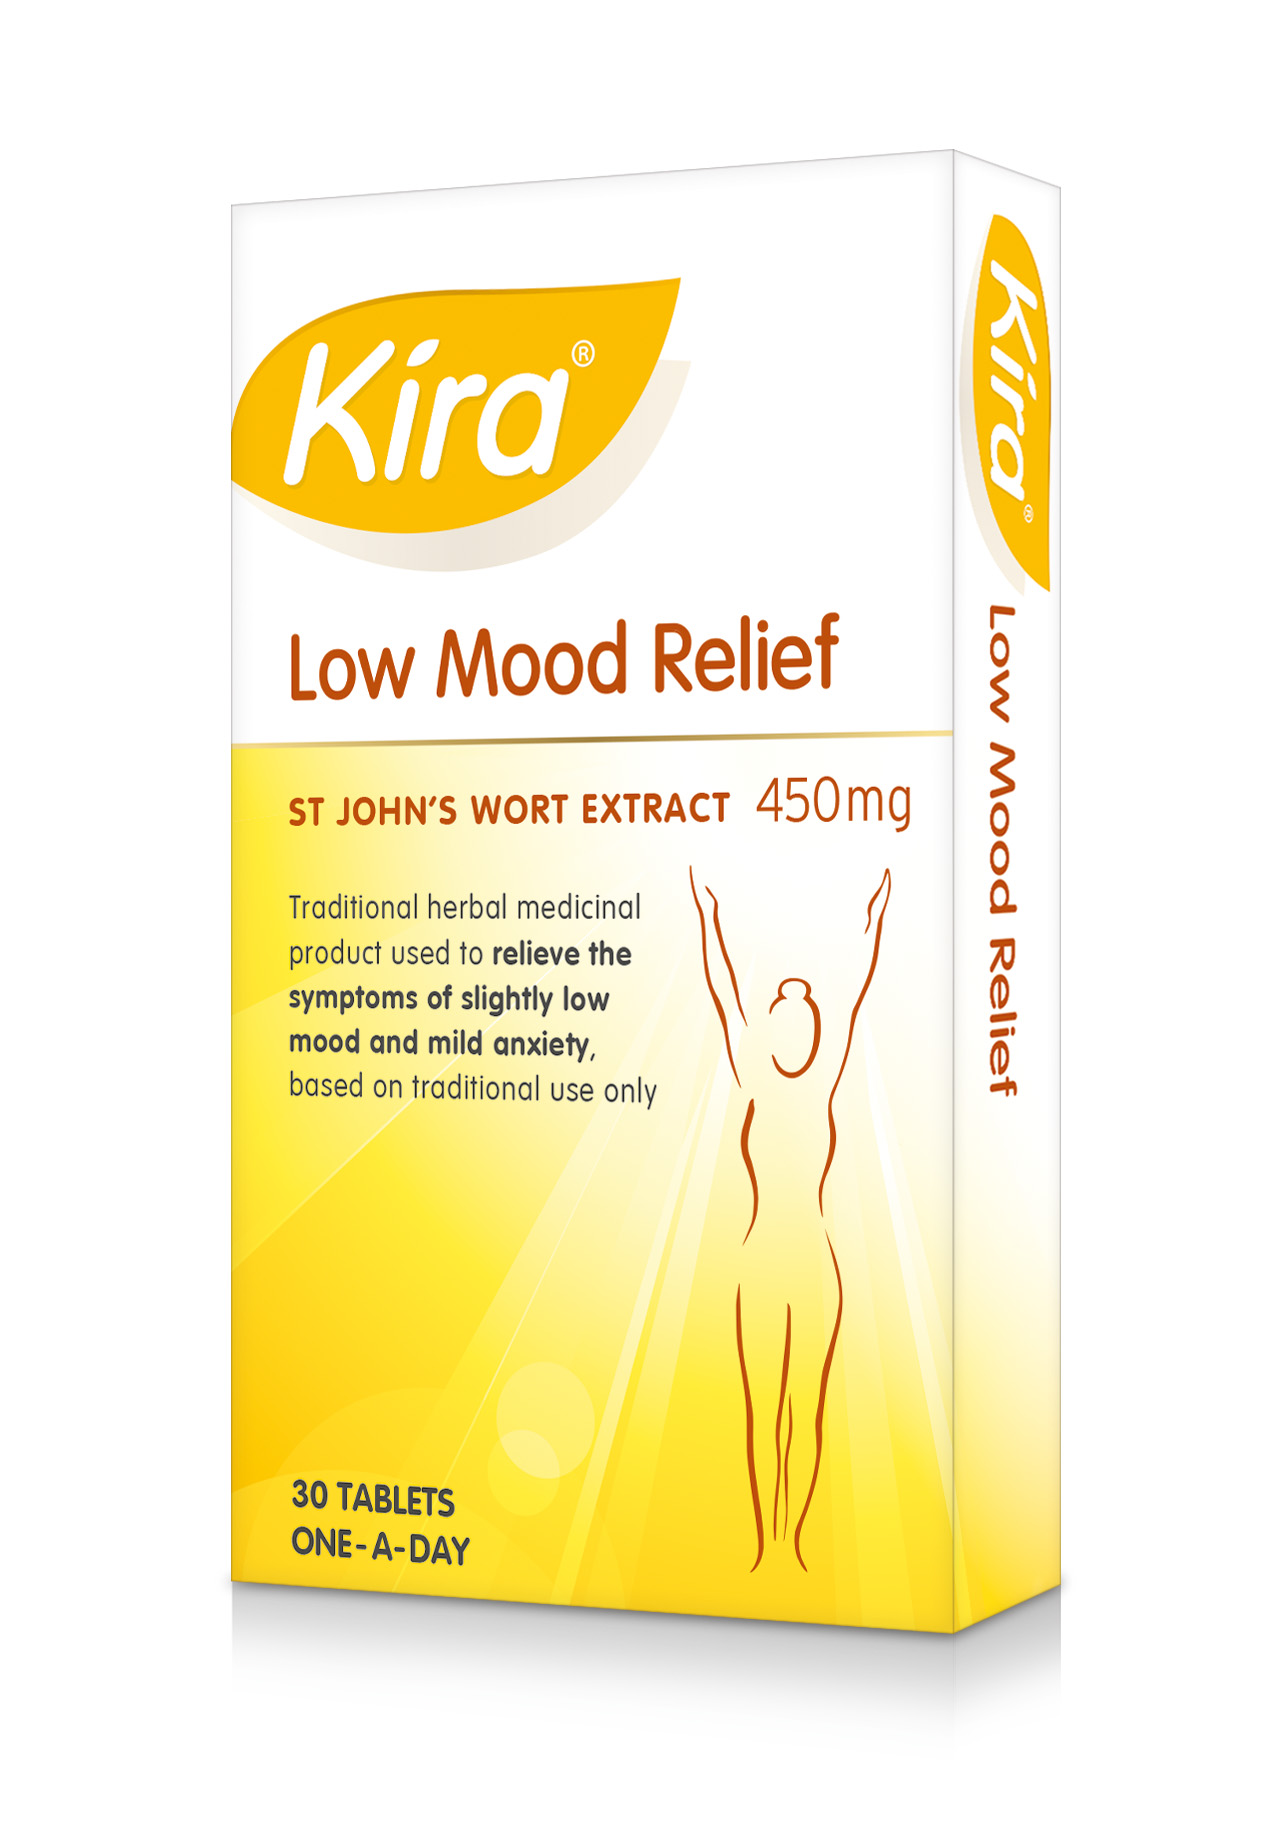 Kira low mood relief